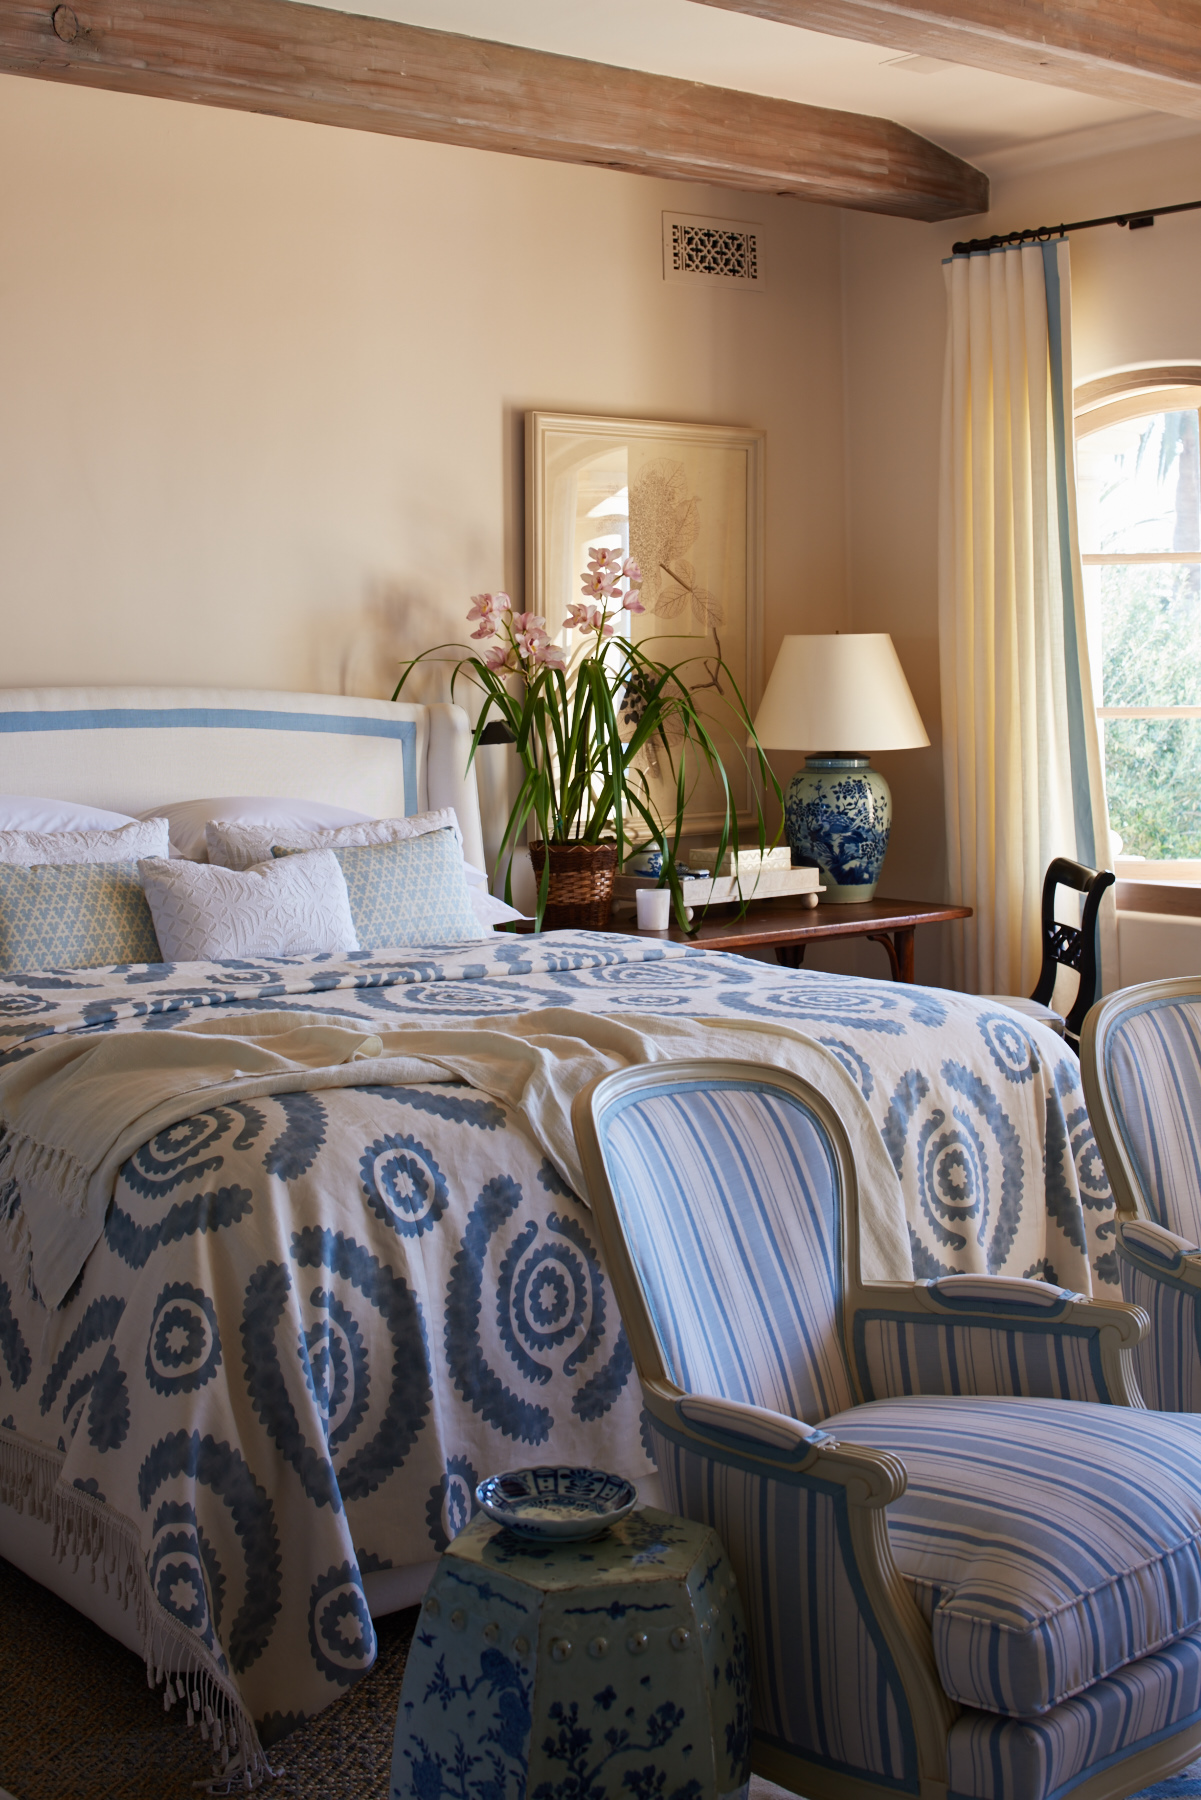 Blue circle pattern bedding and striped sitting chairs